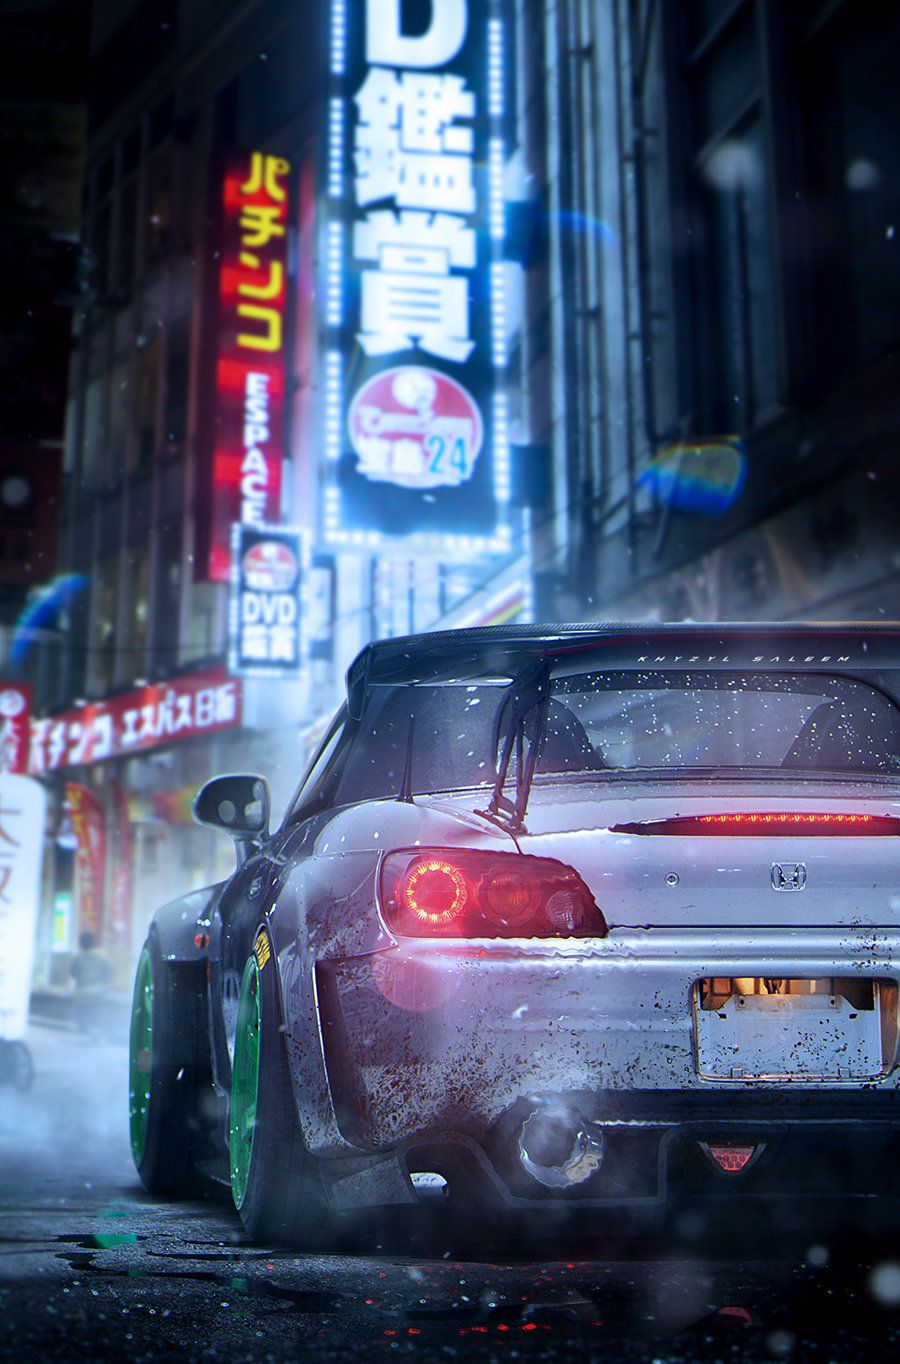 Honda Phone Wallpapers Artstation Honda S2000 Wallpaper Khyzyl Saleem Ma Phone